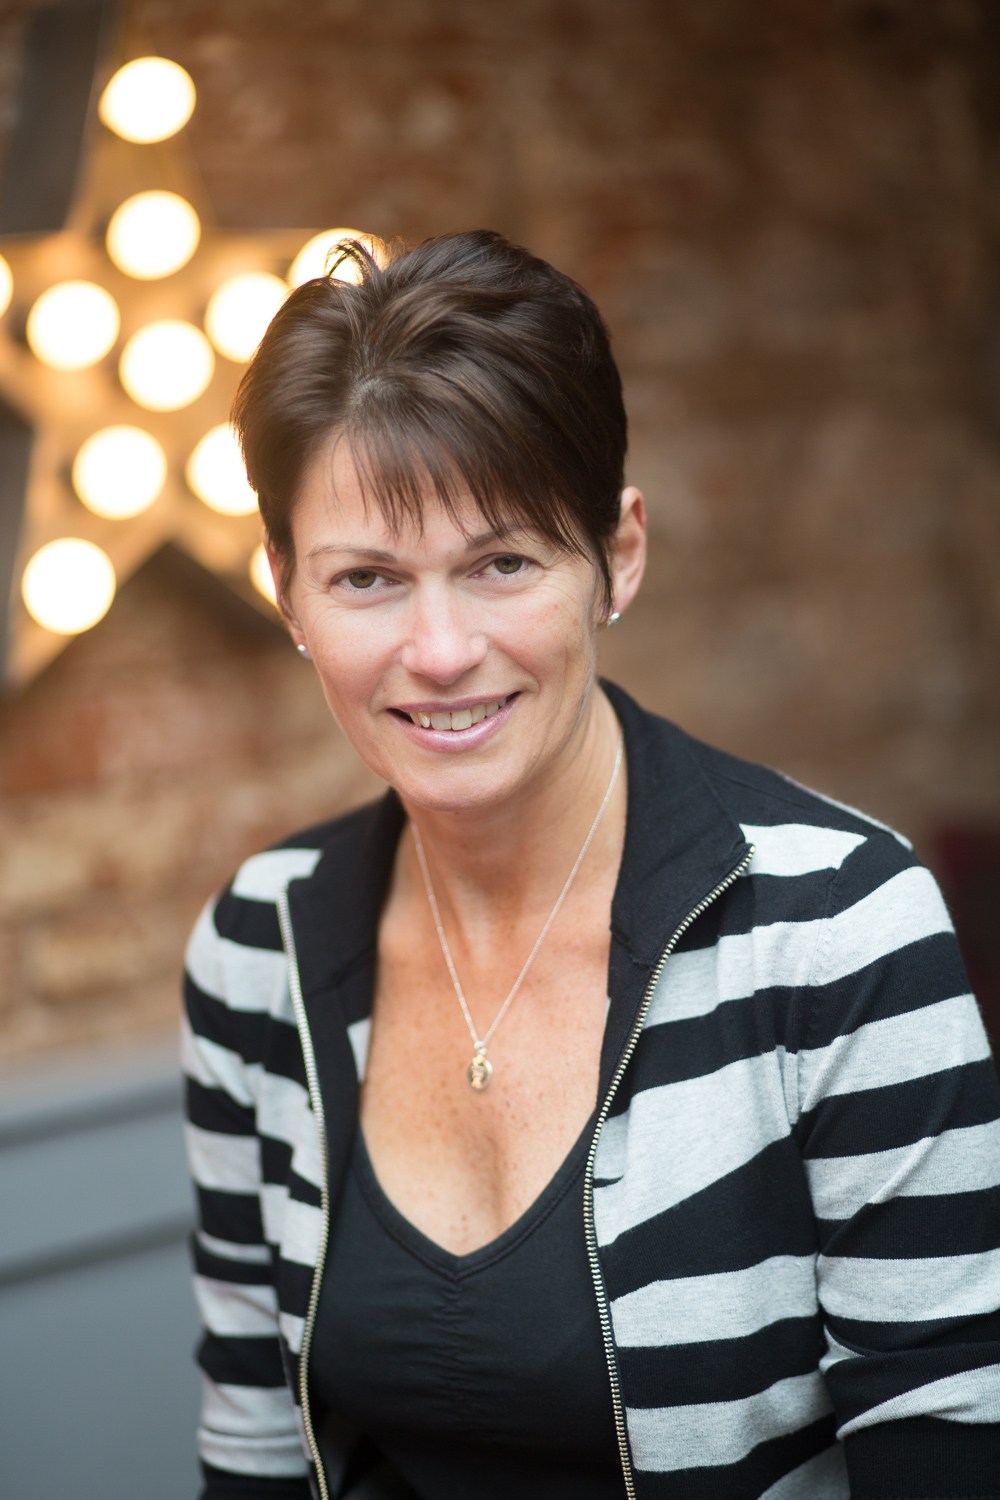 Jo Stroud, Founder of Mantra Jewellery: Don't make assumptions – look for evidence.